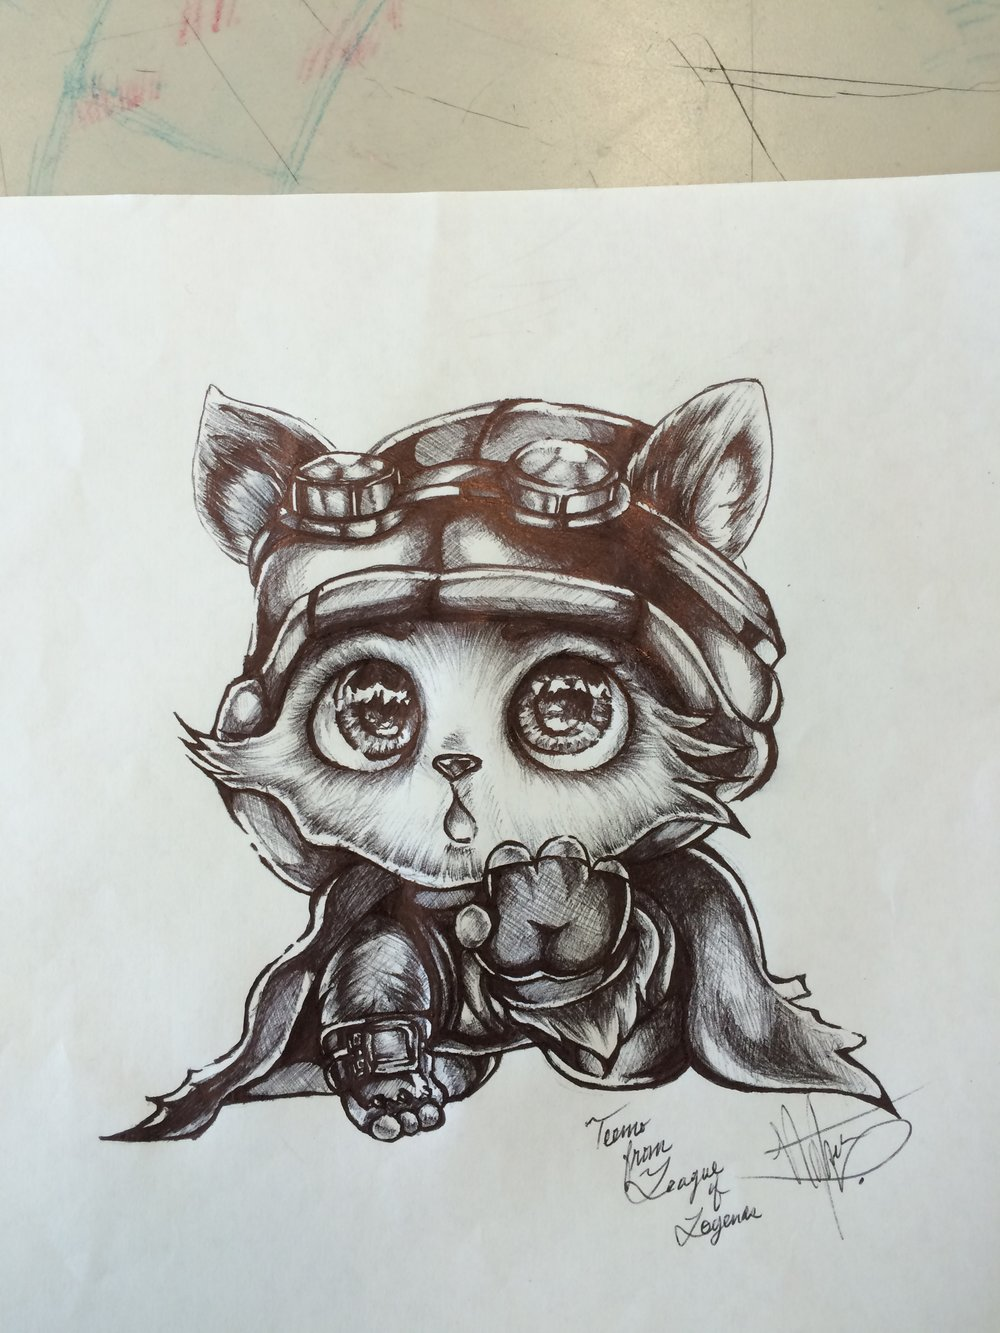 Teemo submission by   Neohkk